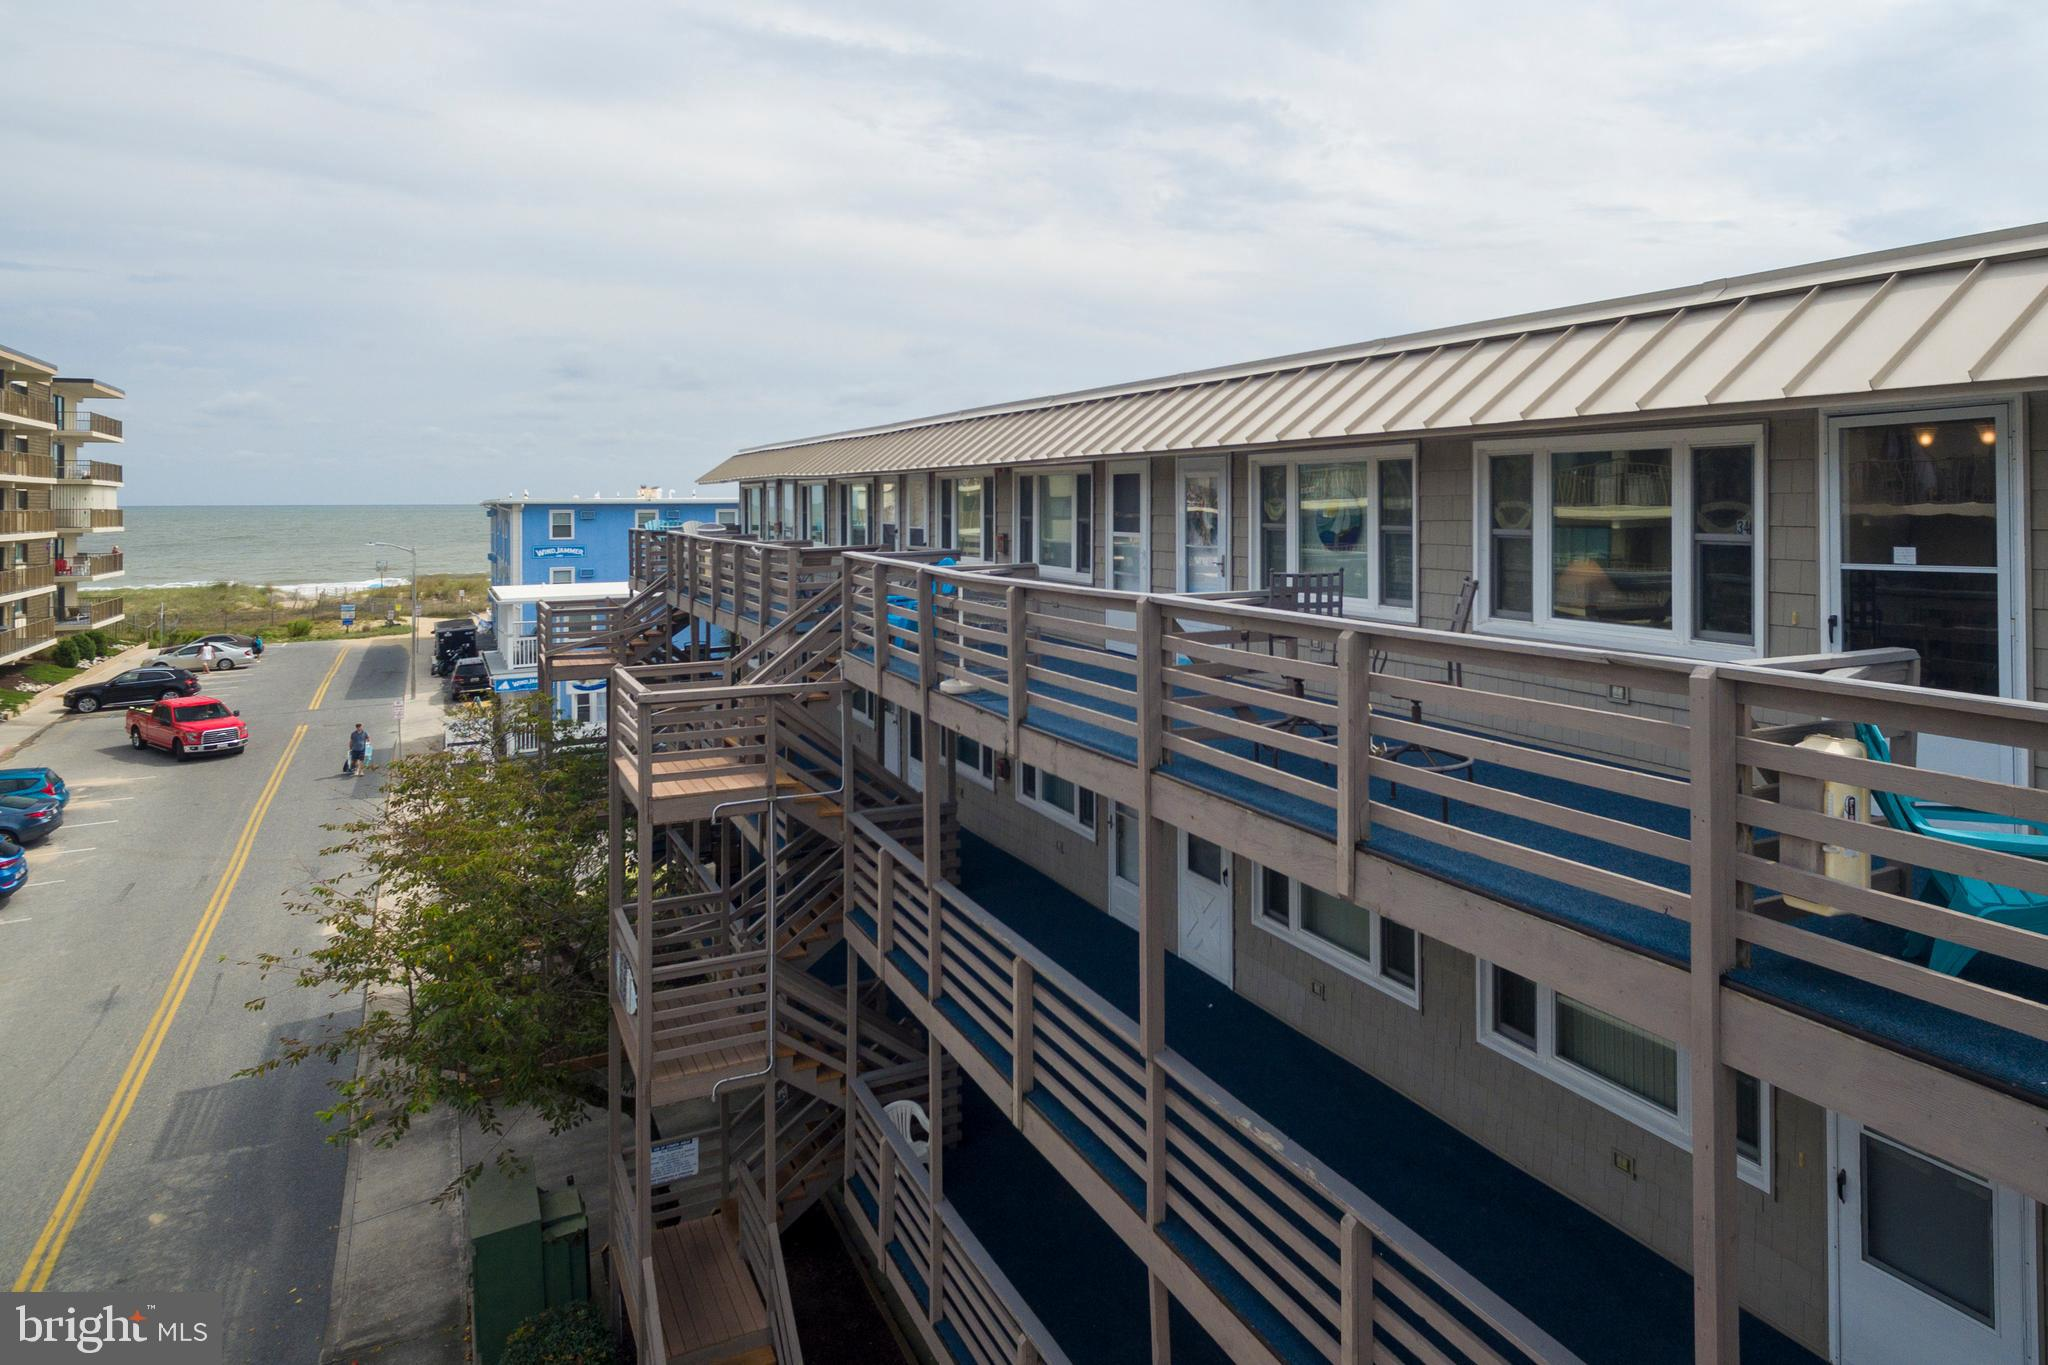 Very affordable ocean block condo that has great views from the balcony! Owners have just replaced hot water heater (9/2020) and stove, refrigerator, washer/dryer and HVAC in 2017. Also has newer windows. This condo has been loved and been well maintained by owners and now it's ready for a new owner to make new beach memories. Only steps to the beach and sand, you can hear and see ocean from balcony. Located in popular mid-town, the location offers lots of restaurants (just within a couple blocks) with ice cream, crabs, subs, burgers, seafood, wine/cheese, Irish Pub and more. Also is close to mini golf, water sports rentals, entertainment and night life. Plus, conveniently a few blocks from the Convention Center, too. This part of town has low density beach, so has less crowds. Makes for the perfect beach getaway or a successful rental. Building offers a solid condo association with off street parking. Don't miss out on the low interest rates and make this your new beach place!